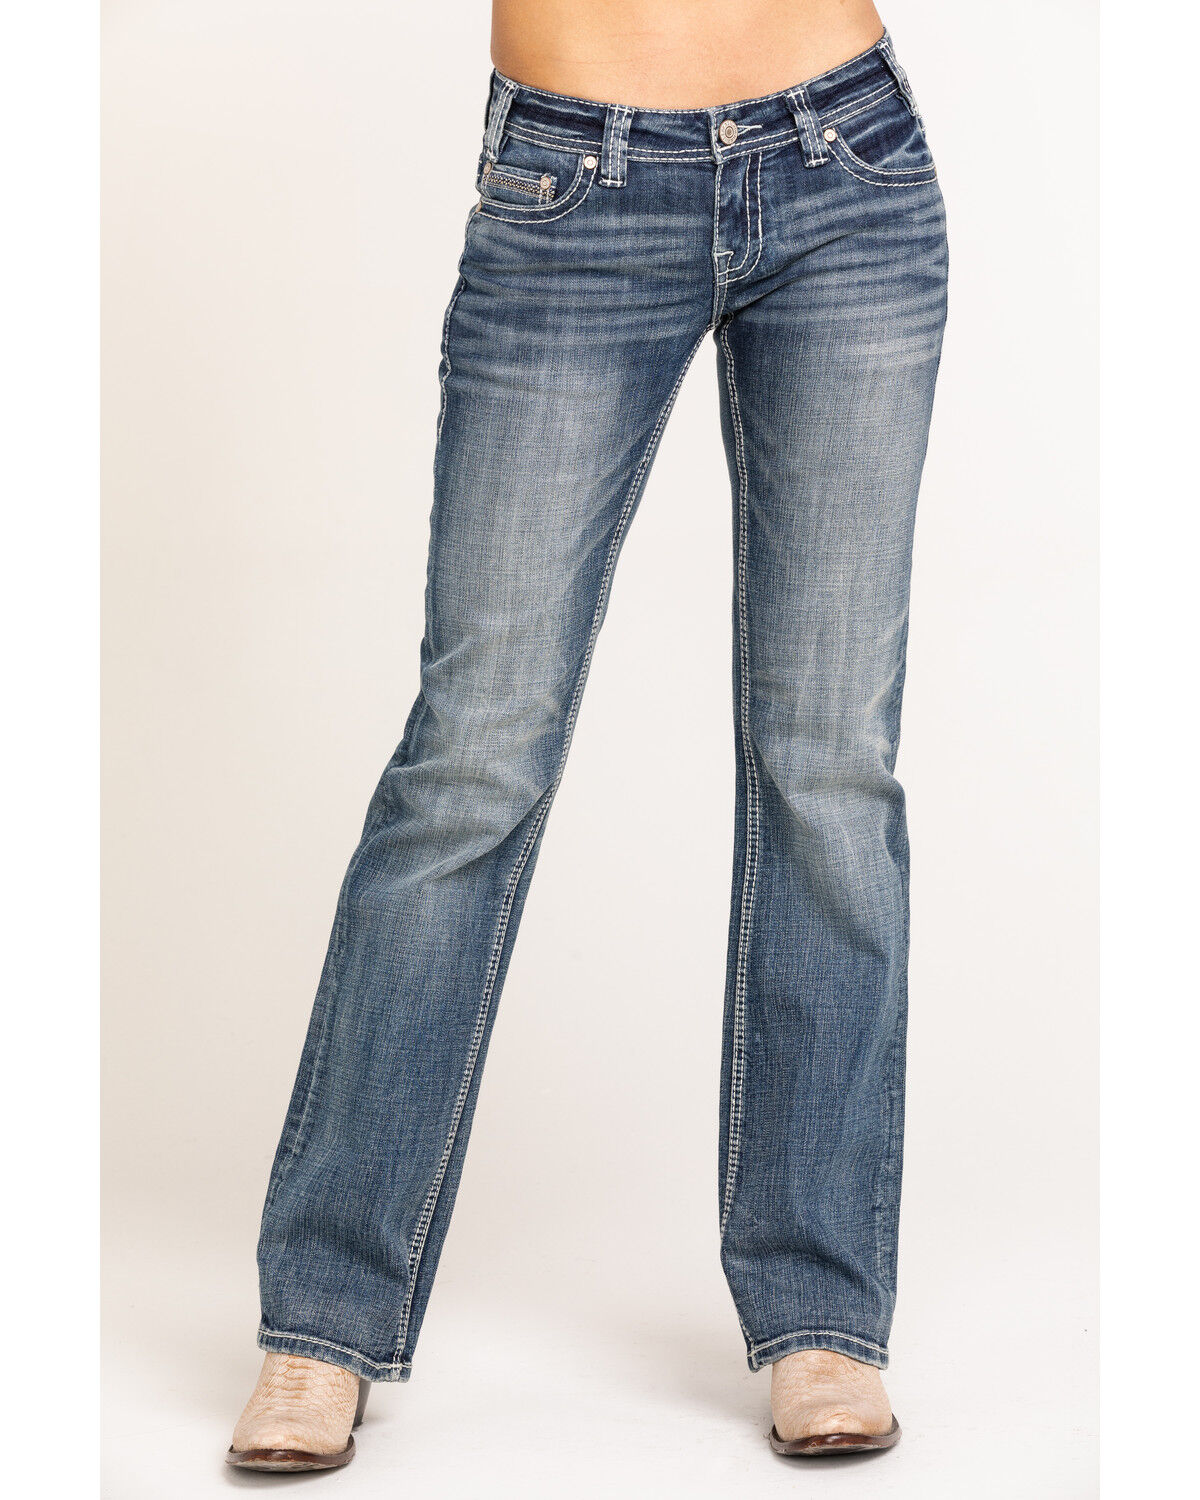 Rock and Roll Cowgirl Women/'s Medium Vintage Riding Jeans W7-3427